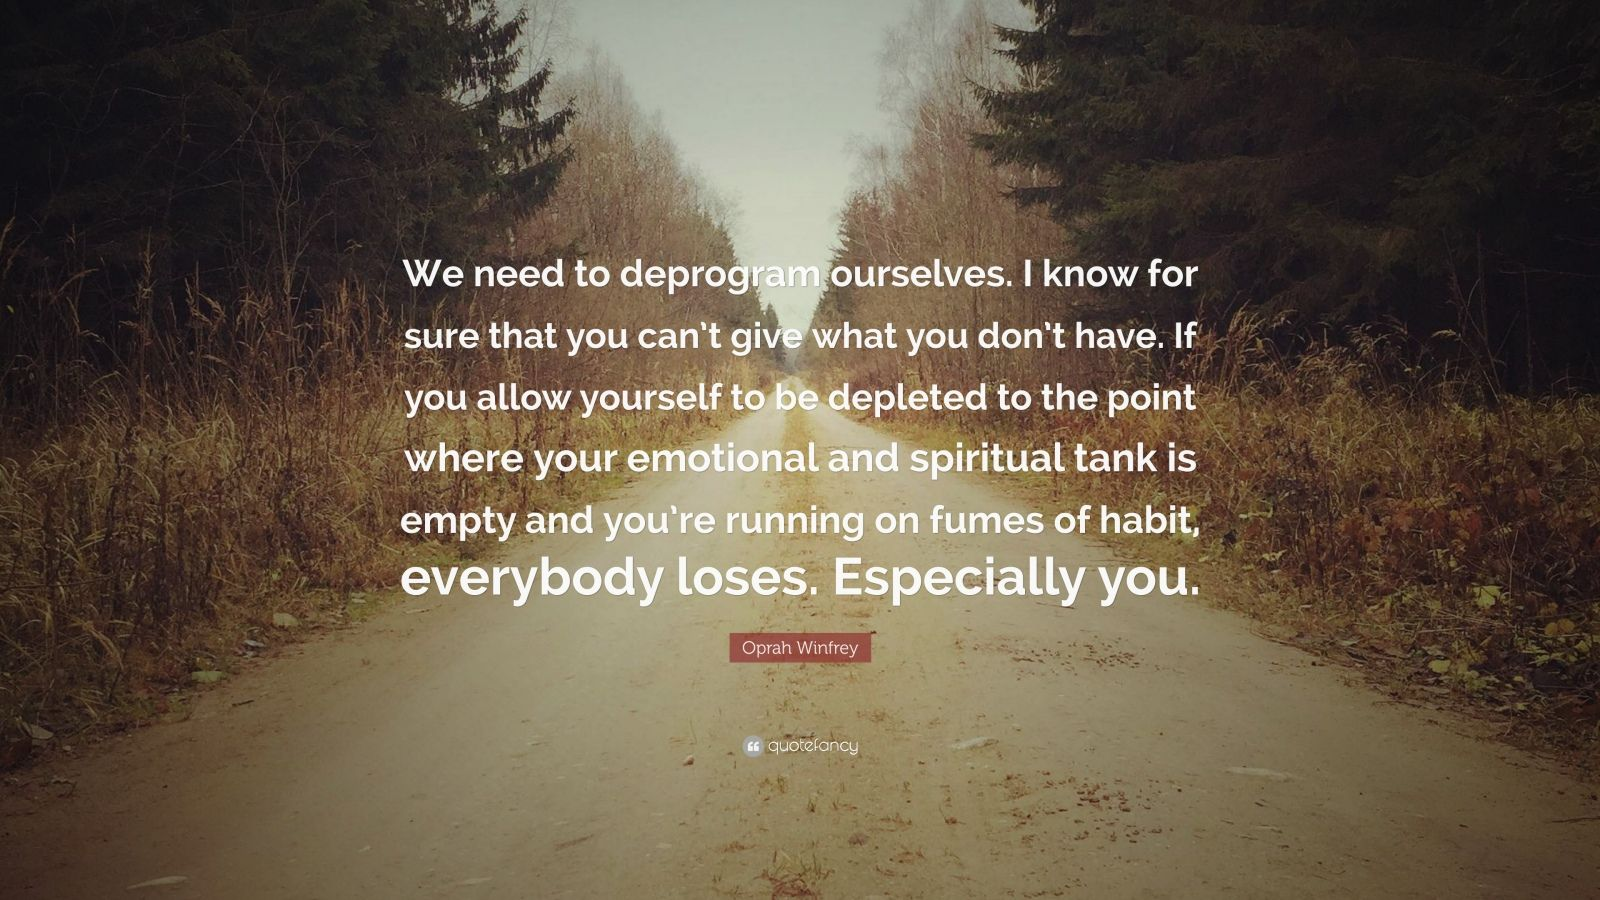 "Oprah Winfrey Quote: ""We need to deprogram ourselves. I know for sure that you can't give what you don't have. If you allow yourself to be depleted to the point where your emotional and spiritual tank is empty and you're running on fumes of habit, everybody loses. Especially you."""